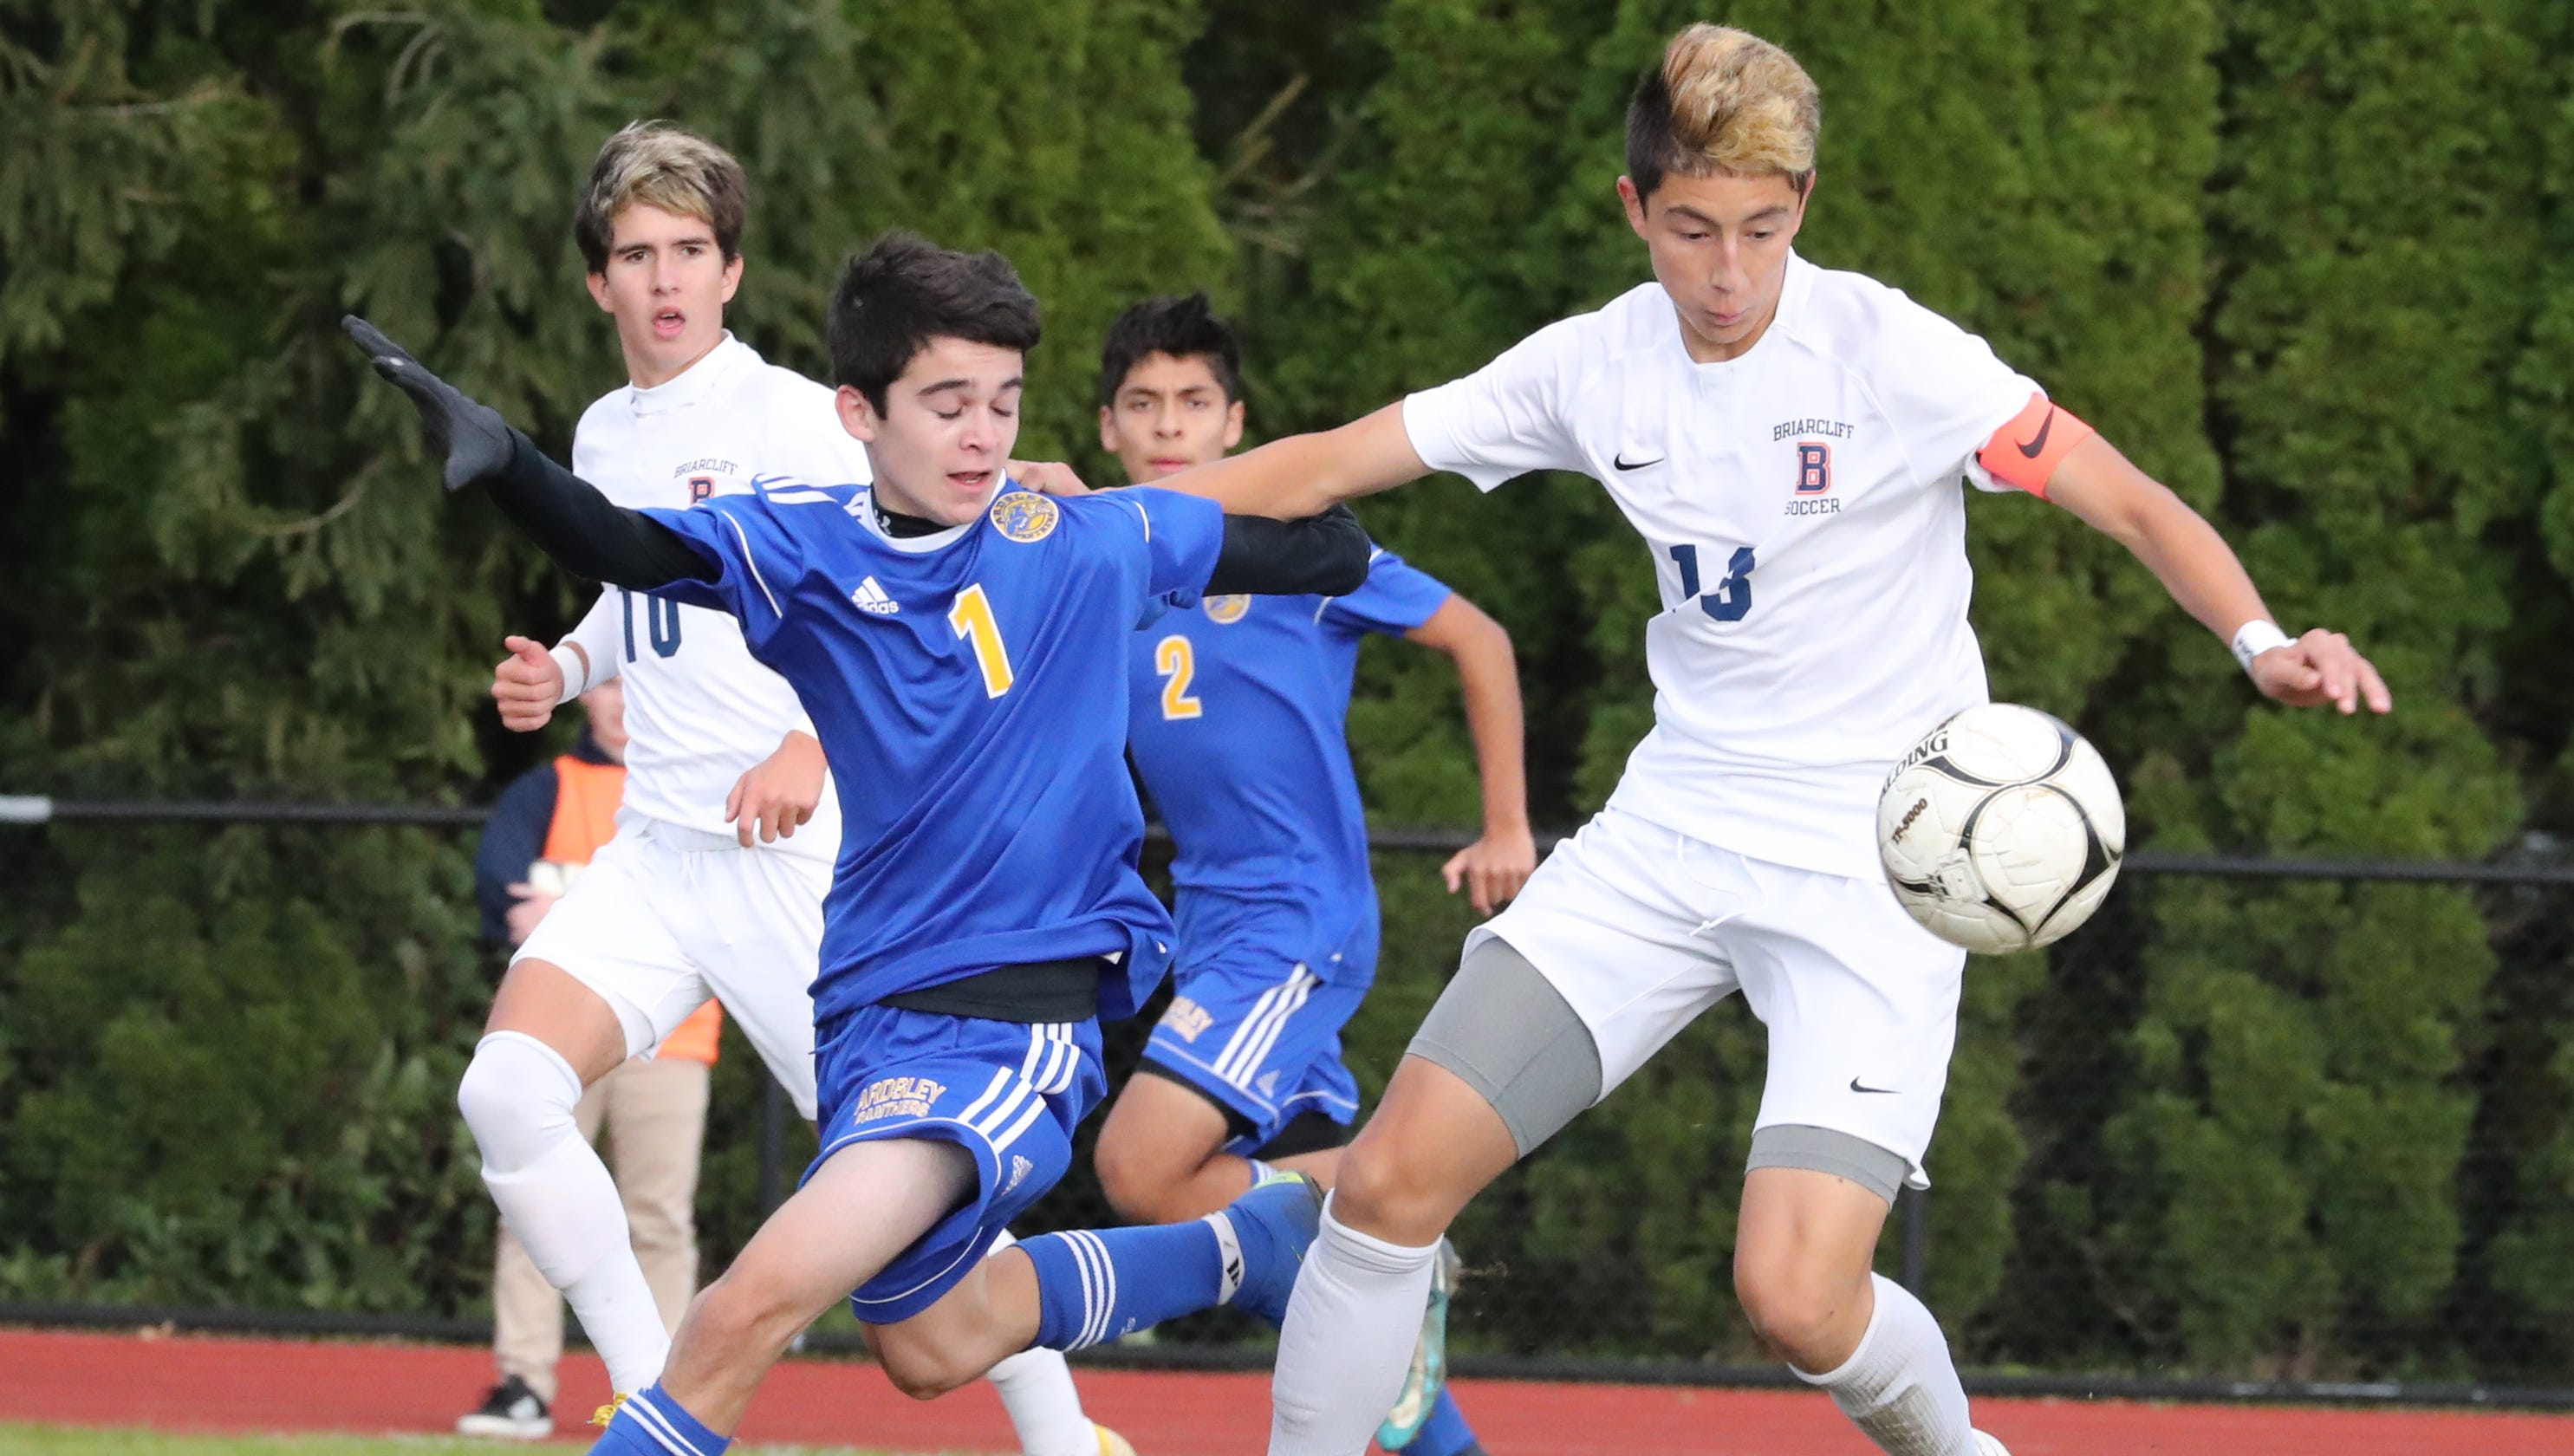 Boys Soccer Section 1 Championship Game Previews And Picks